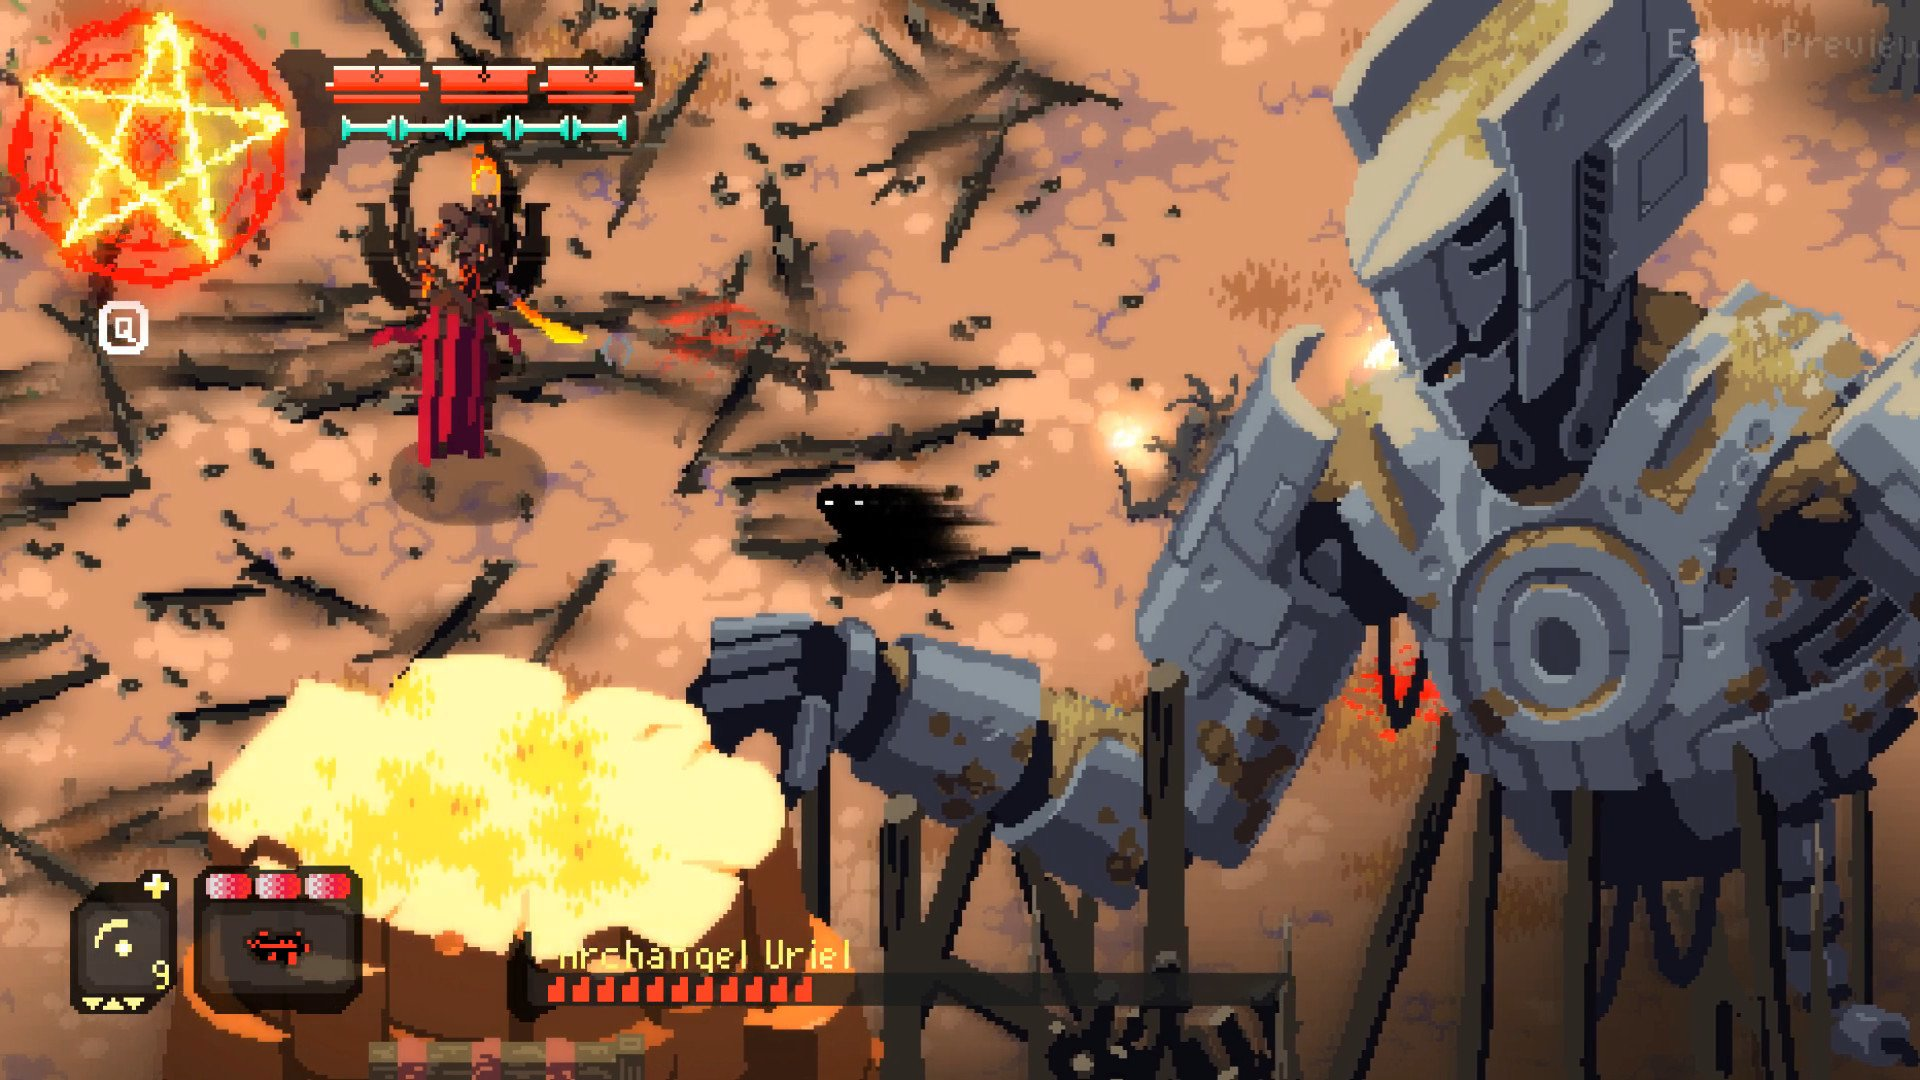 Fallen Angel Is Officially Launched Onto Steam For PC Audiences